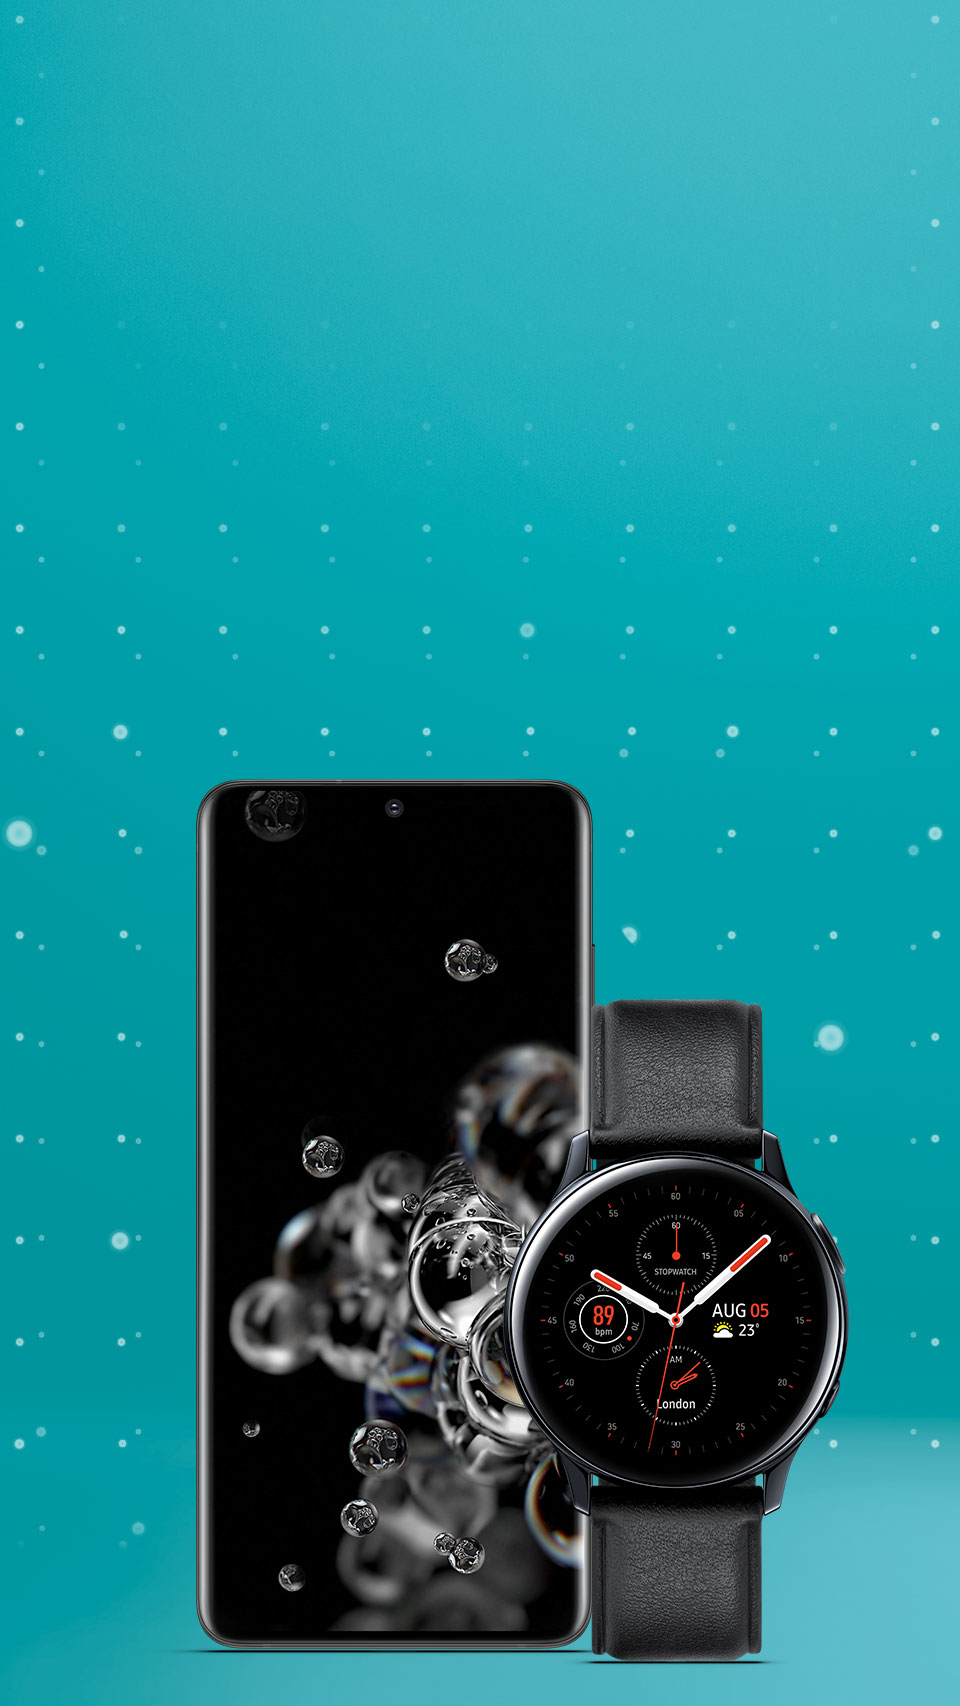 Pre-order the Samsung Galaxy S20 and save up to £240 on Samsung Galaxy Watches